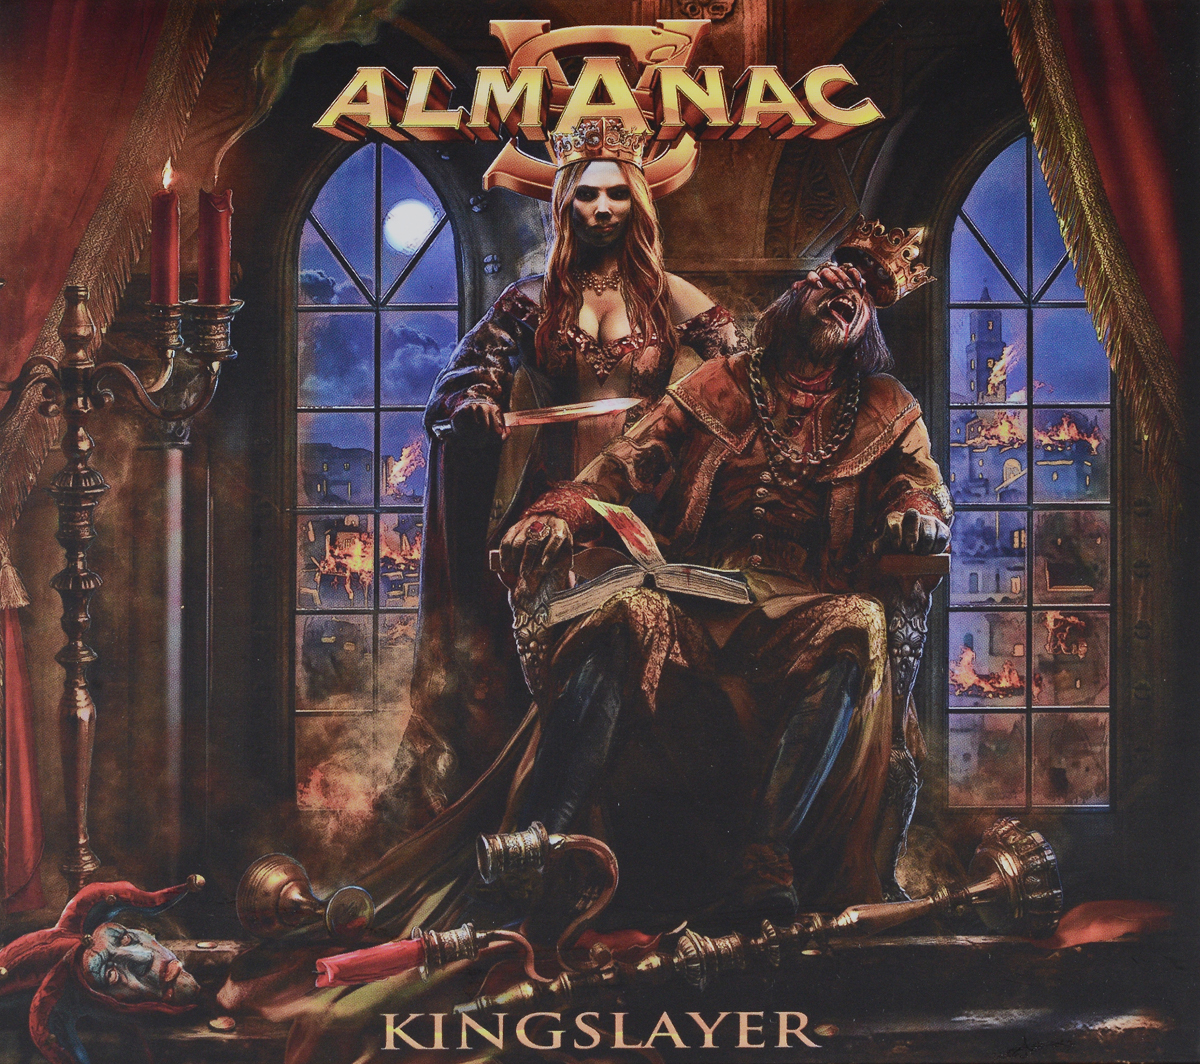 """Almanac"" Almanac. Kingslayer (CD + DVD)"